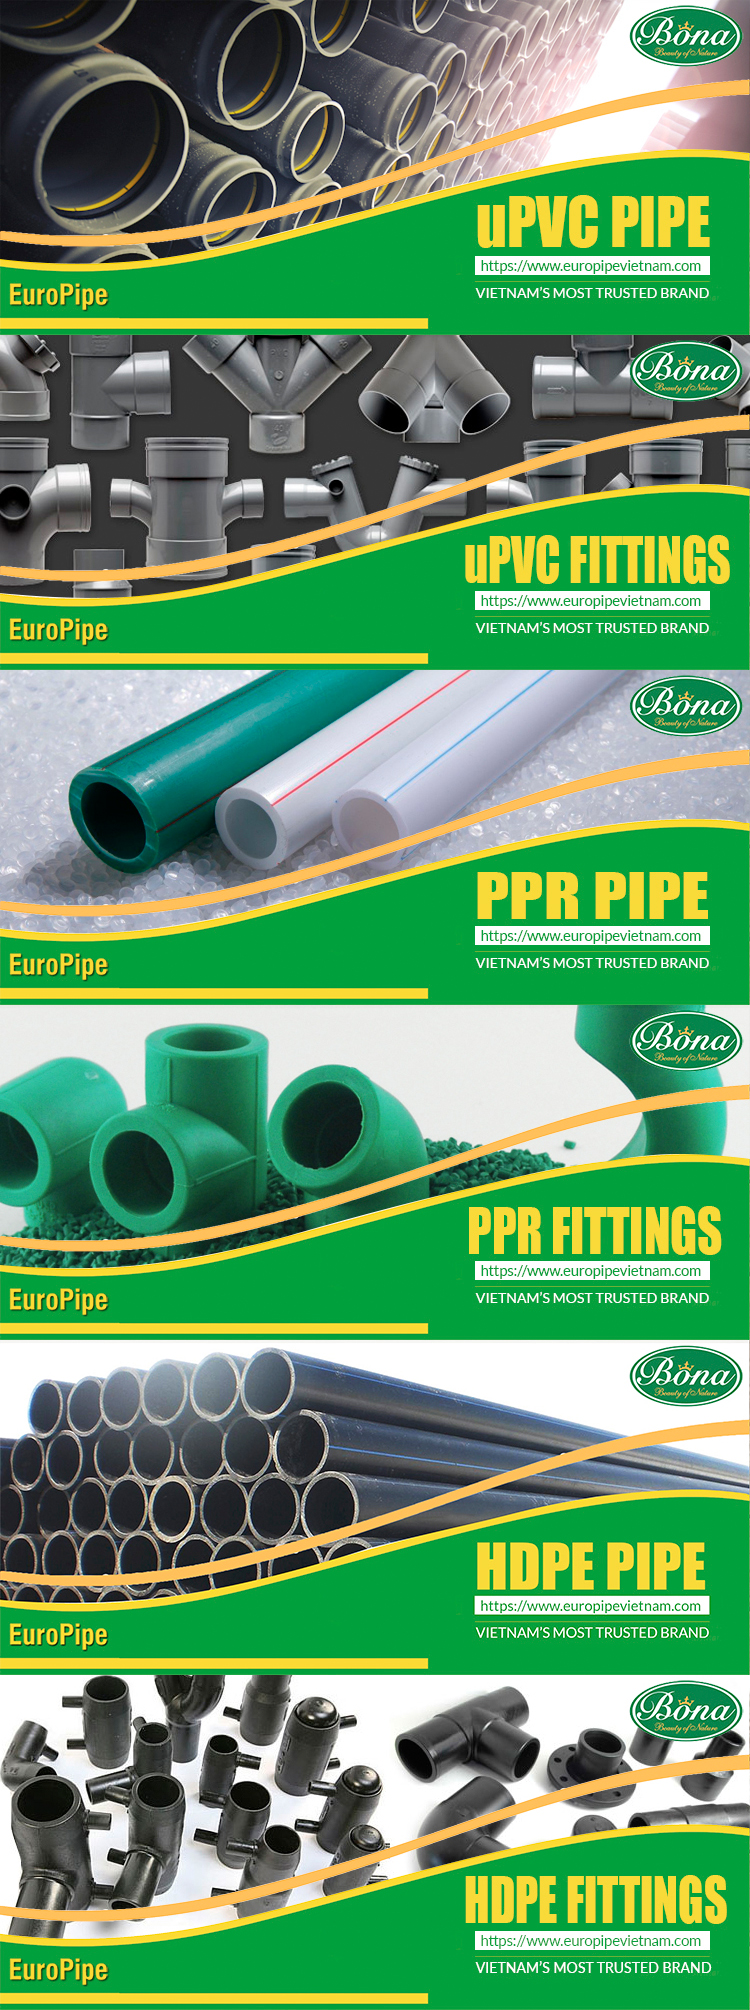 200mm PVC pipe uPVC Pipe hot sale Europe PN6